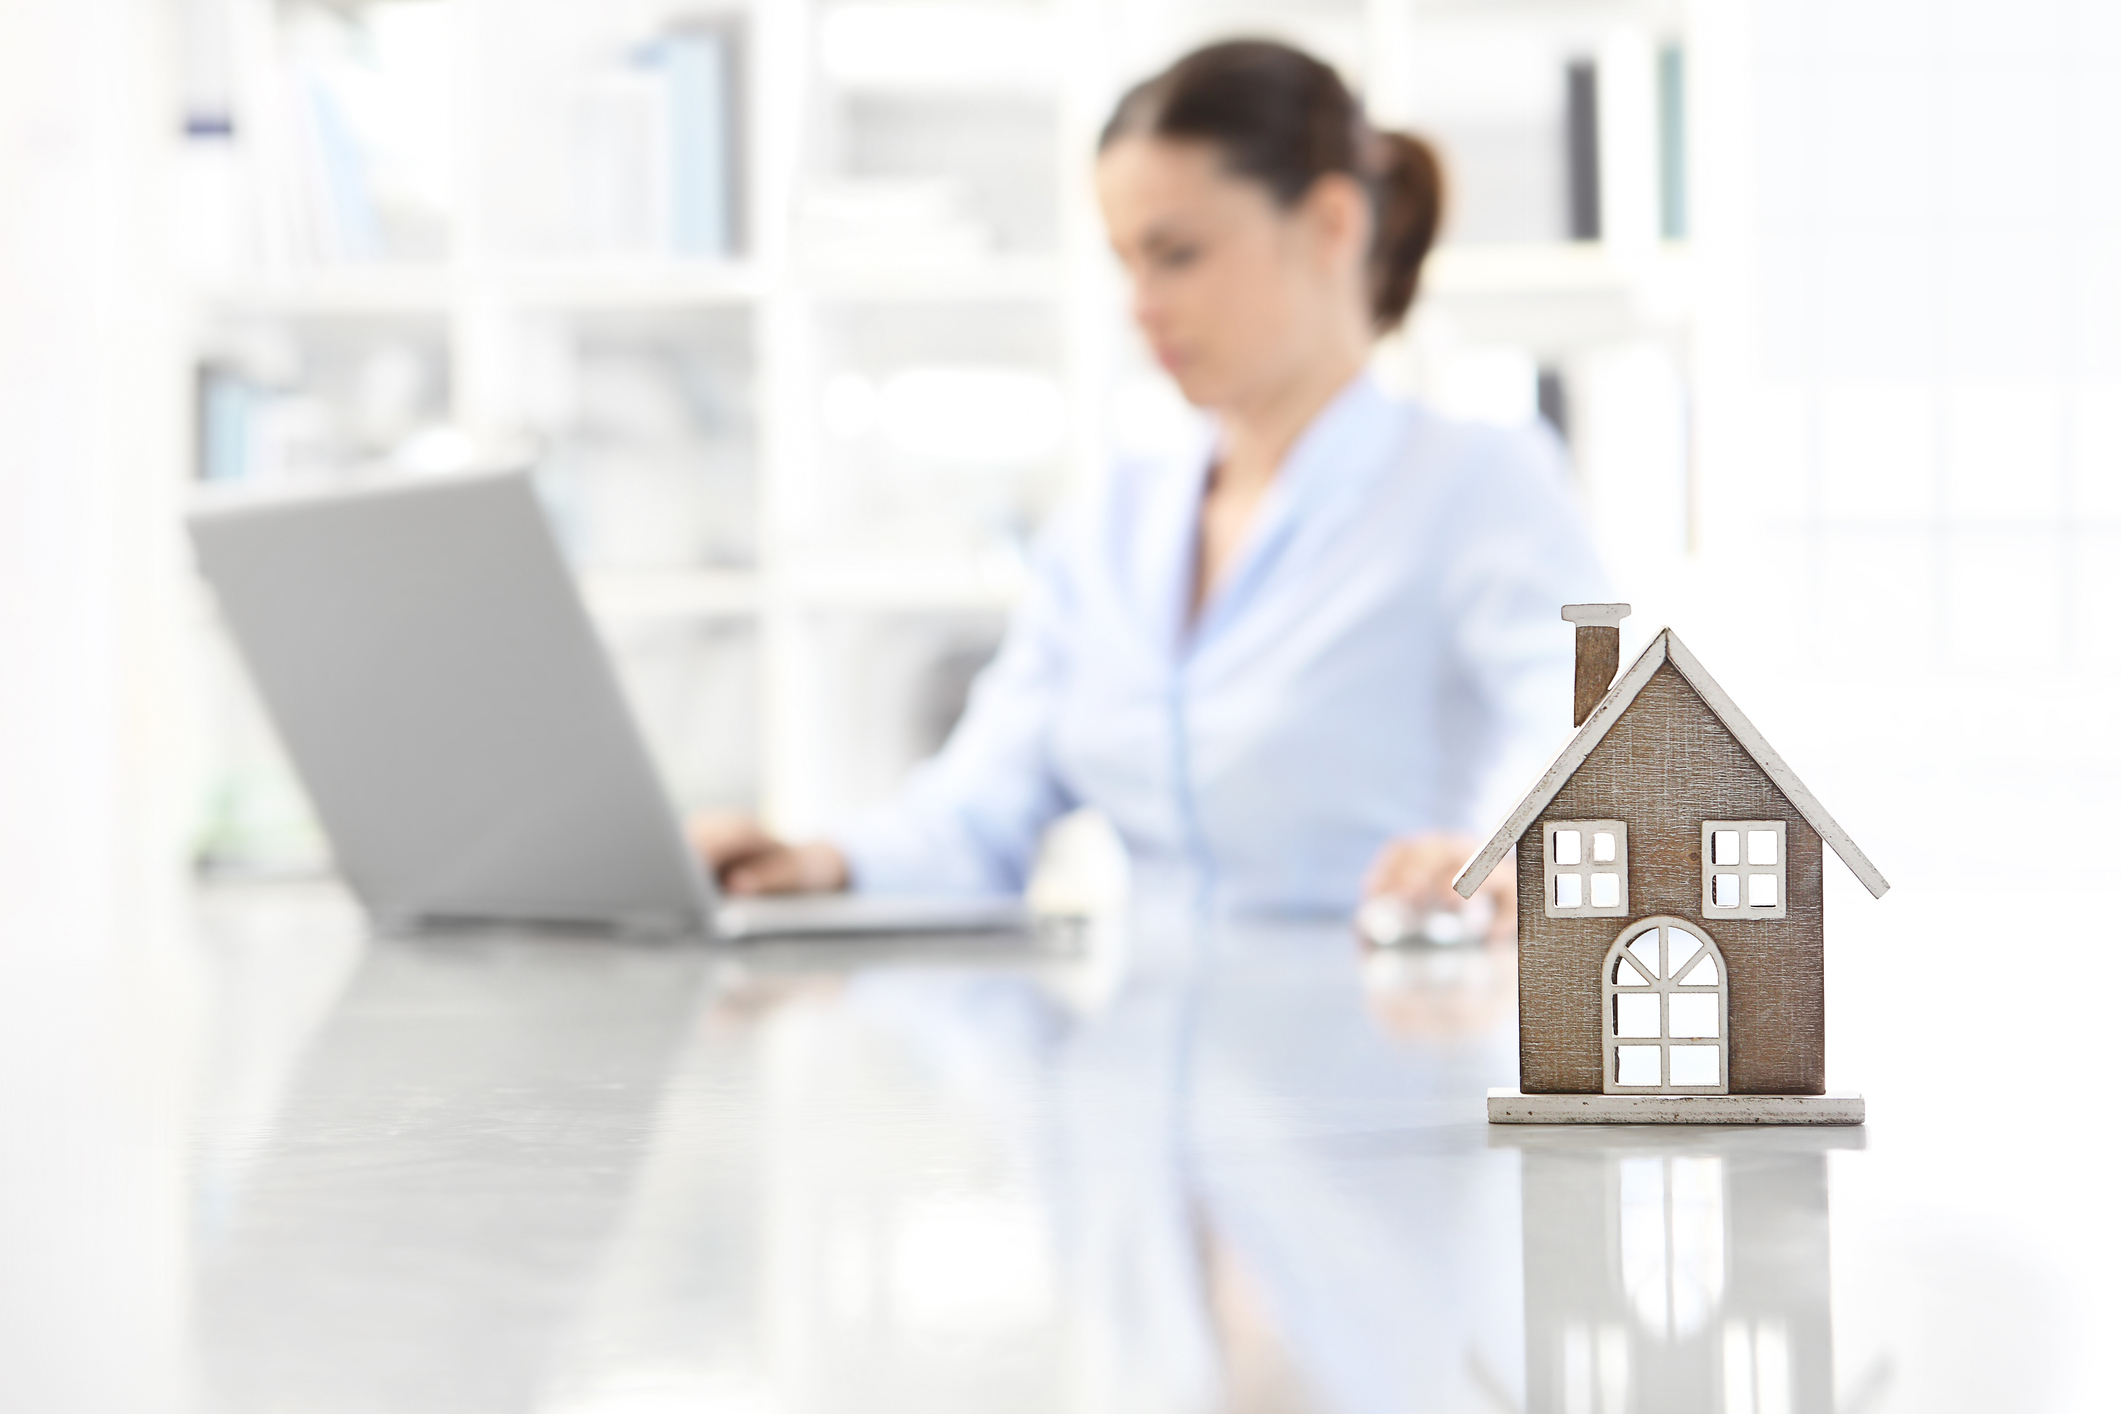 Woman on a computer and a house image